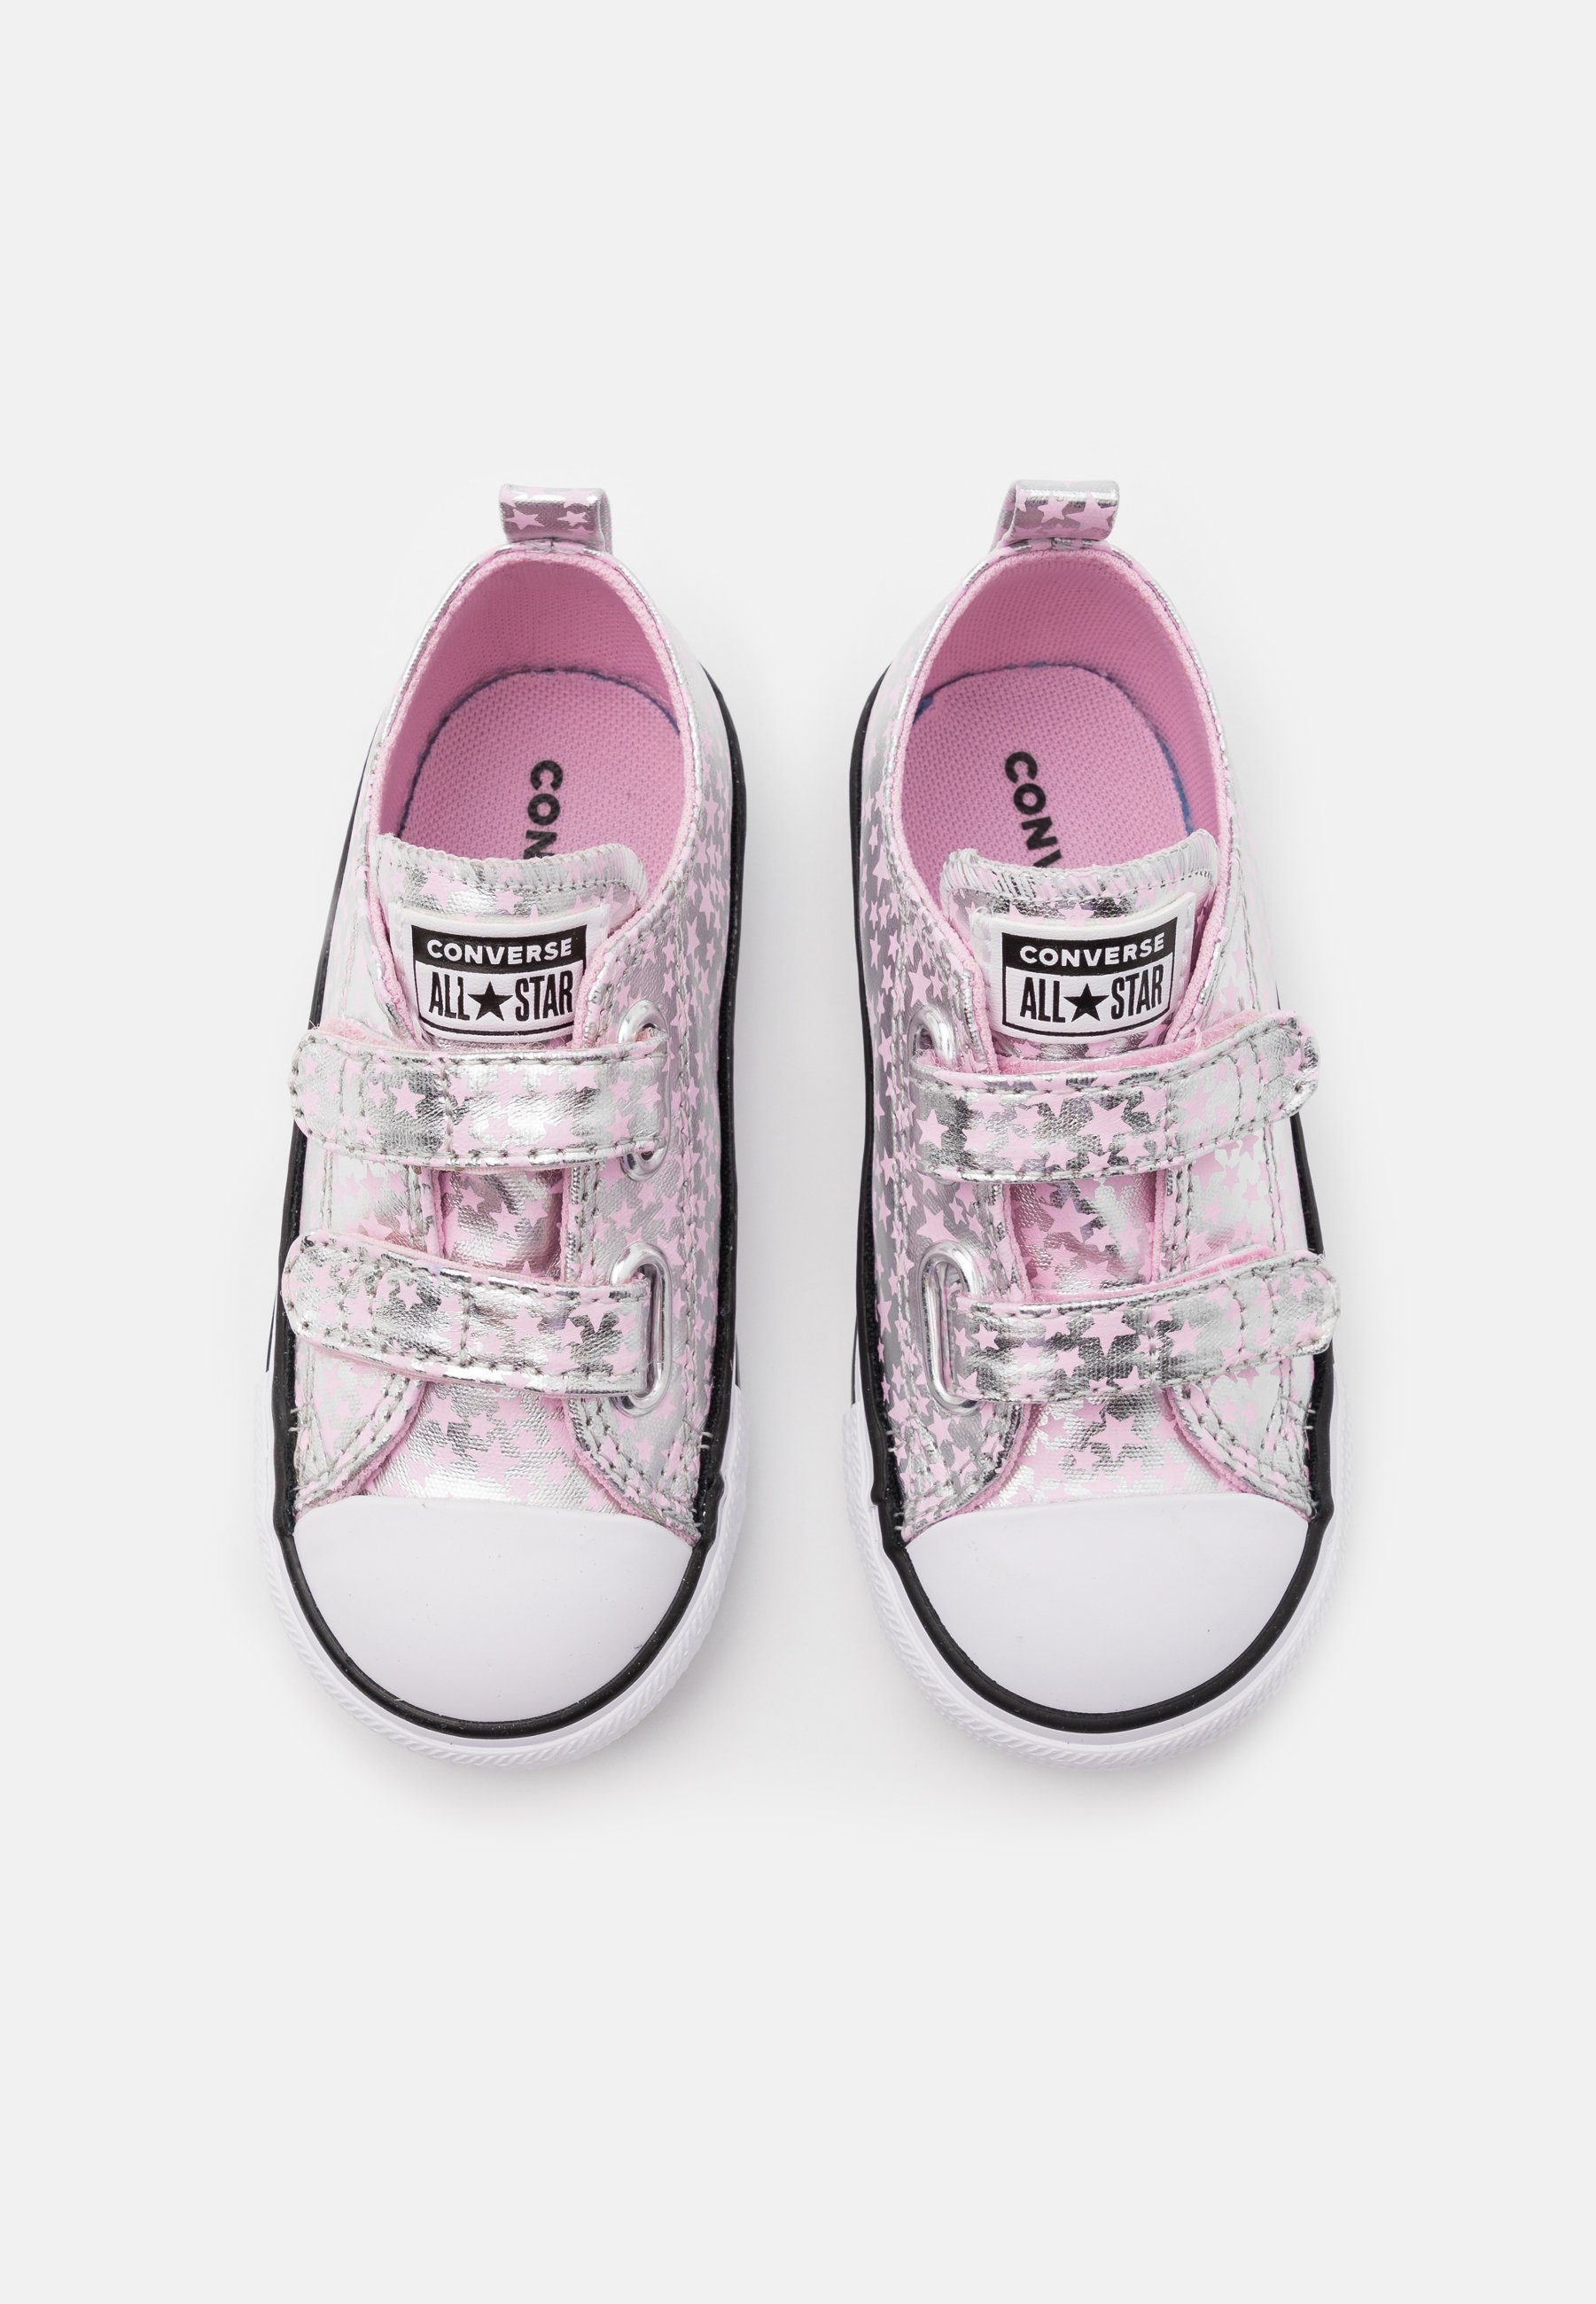 Converse Chuck Taylor All Star - Sneakers Pink Glaze/silver/white